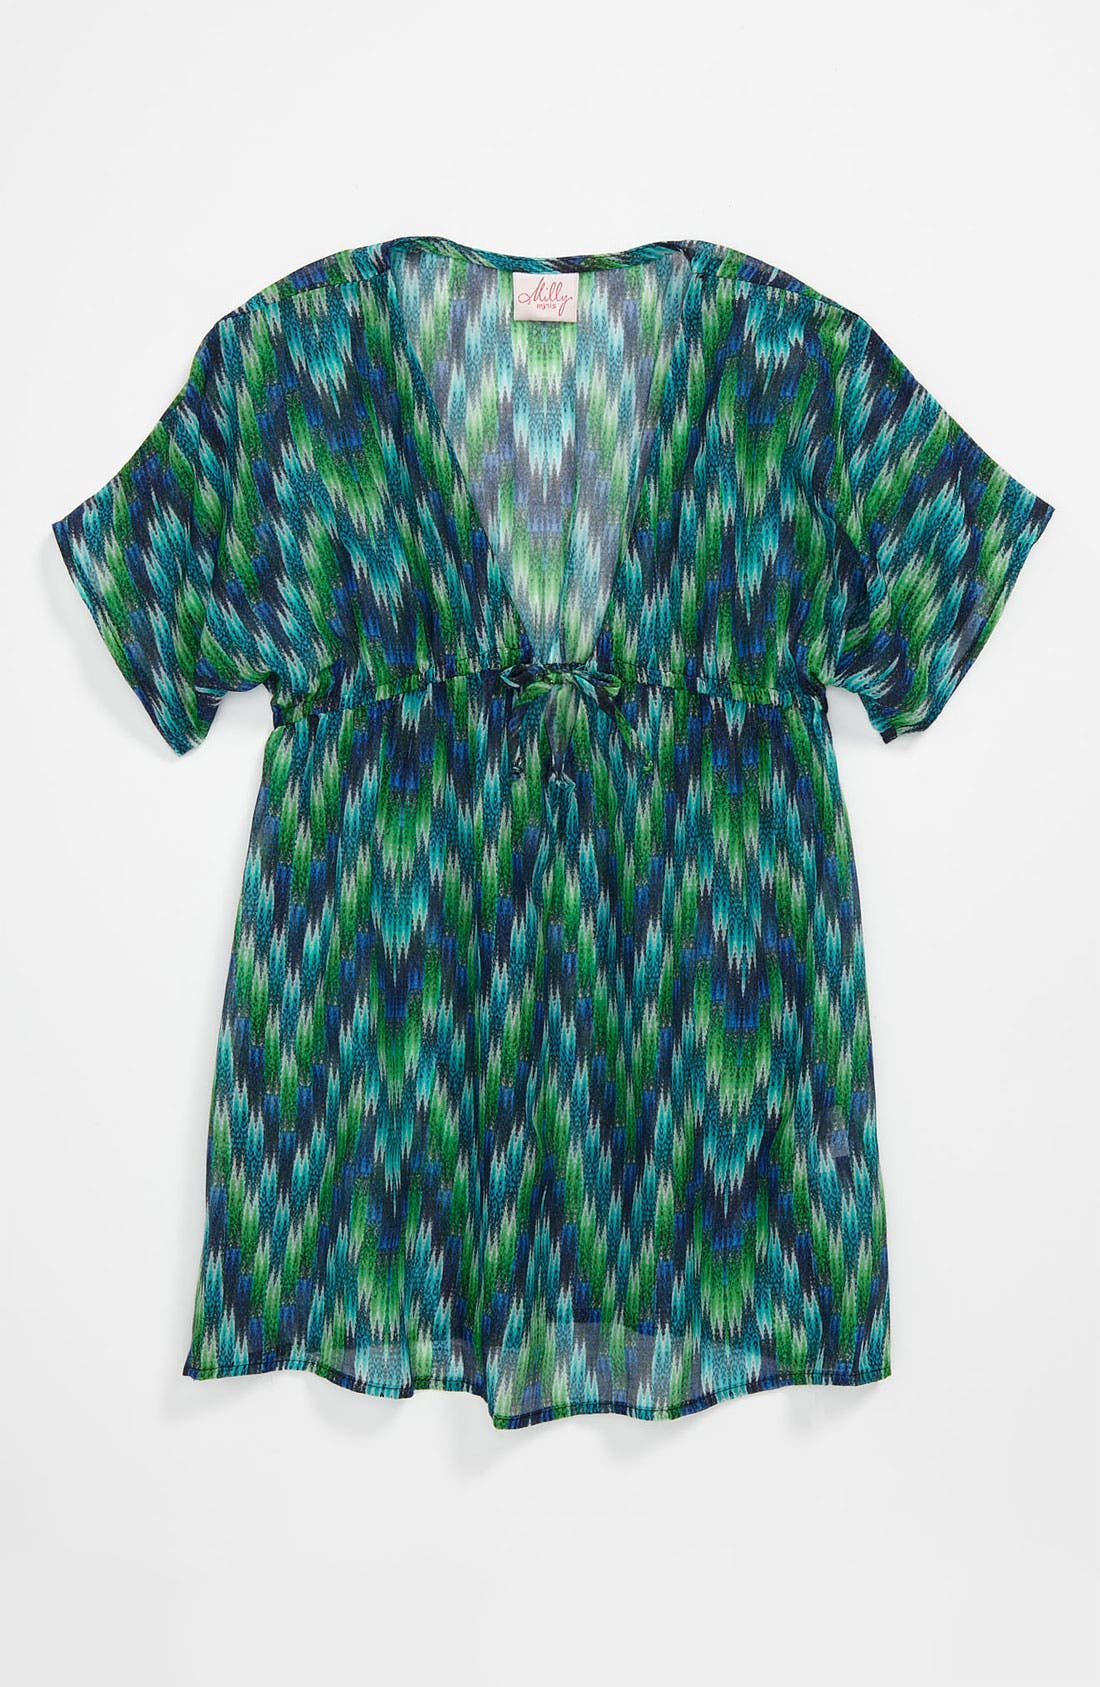 Alternate Image 1 Selected - Milly Minis V-Neck Cover-Up (Big Girls)